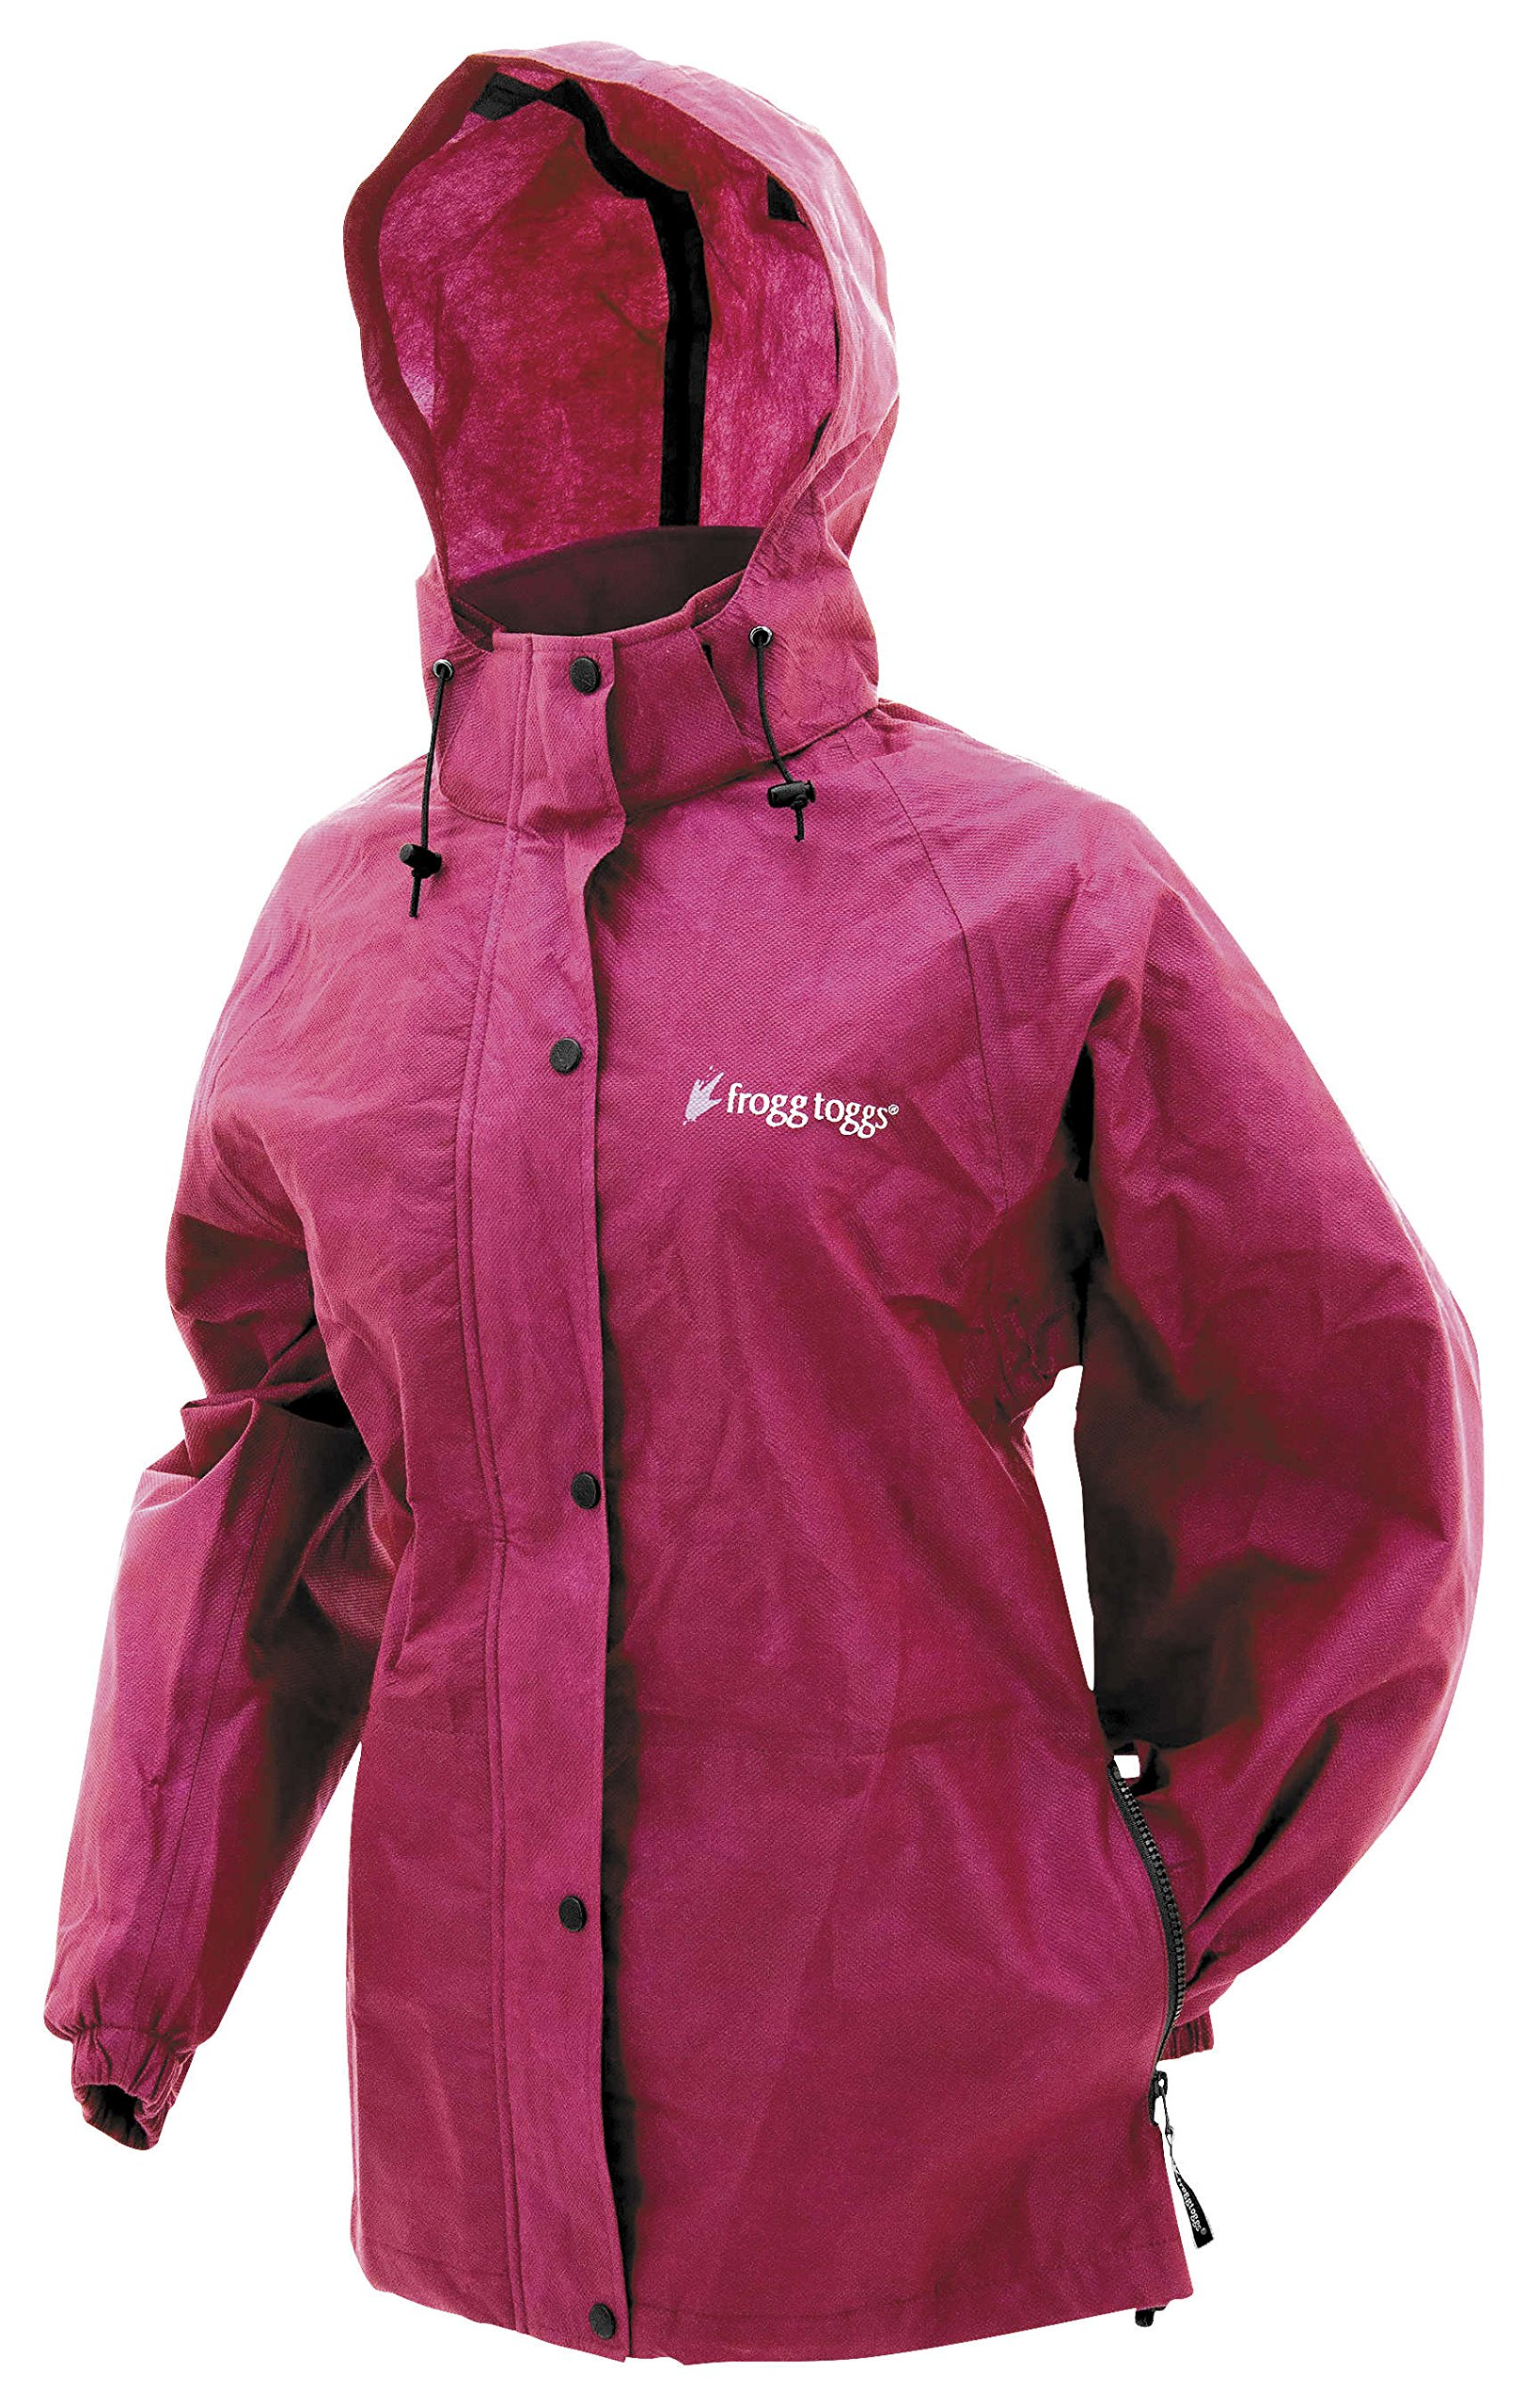 Frogg Toggs Pro Action Women's Street Motorcycle Rain Jacket - Cherry/X-Large by Frogg Toggs